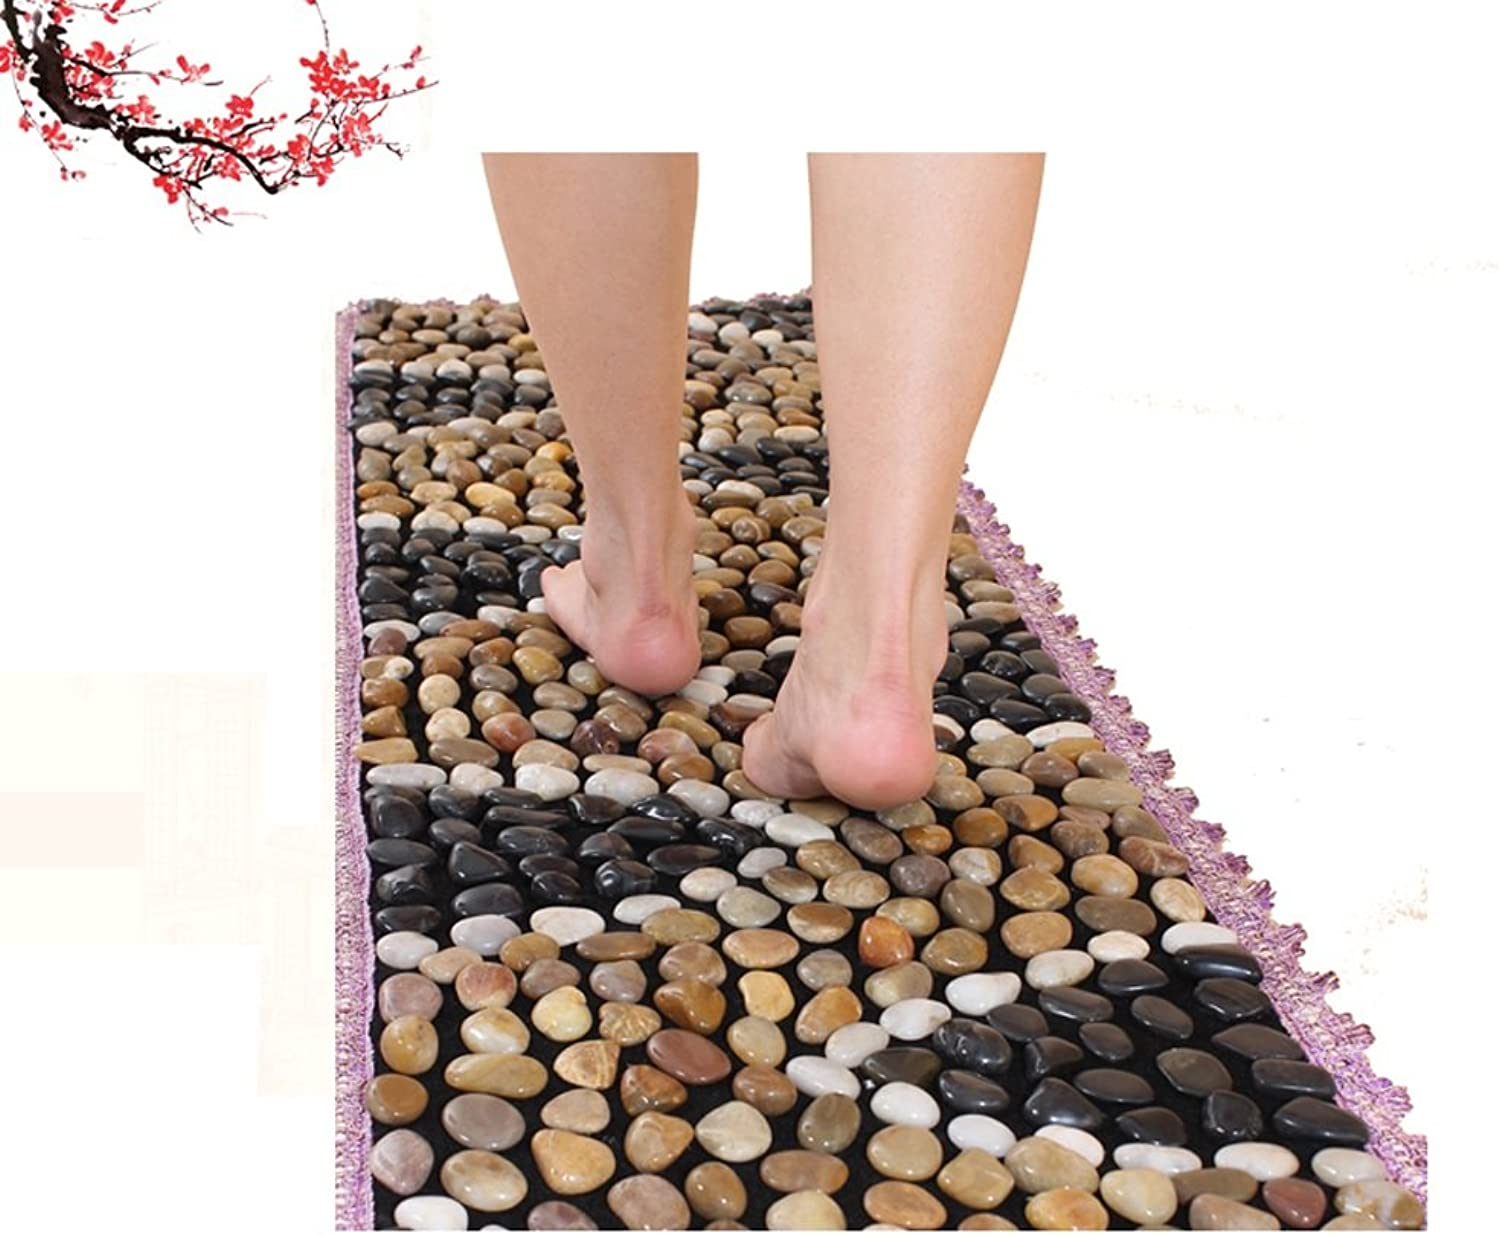 LIAN Shiatsu Plate Foot Massage Pad Acupuncture Massager Mat Toe Pressure Plate Mat for Healthy Relaxing Sole Massage 150X40cm